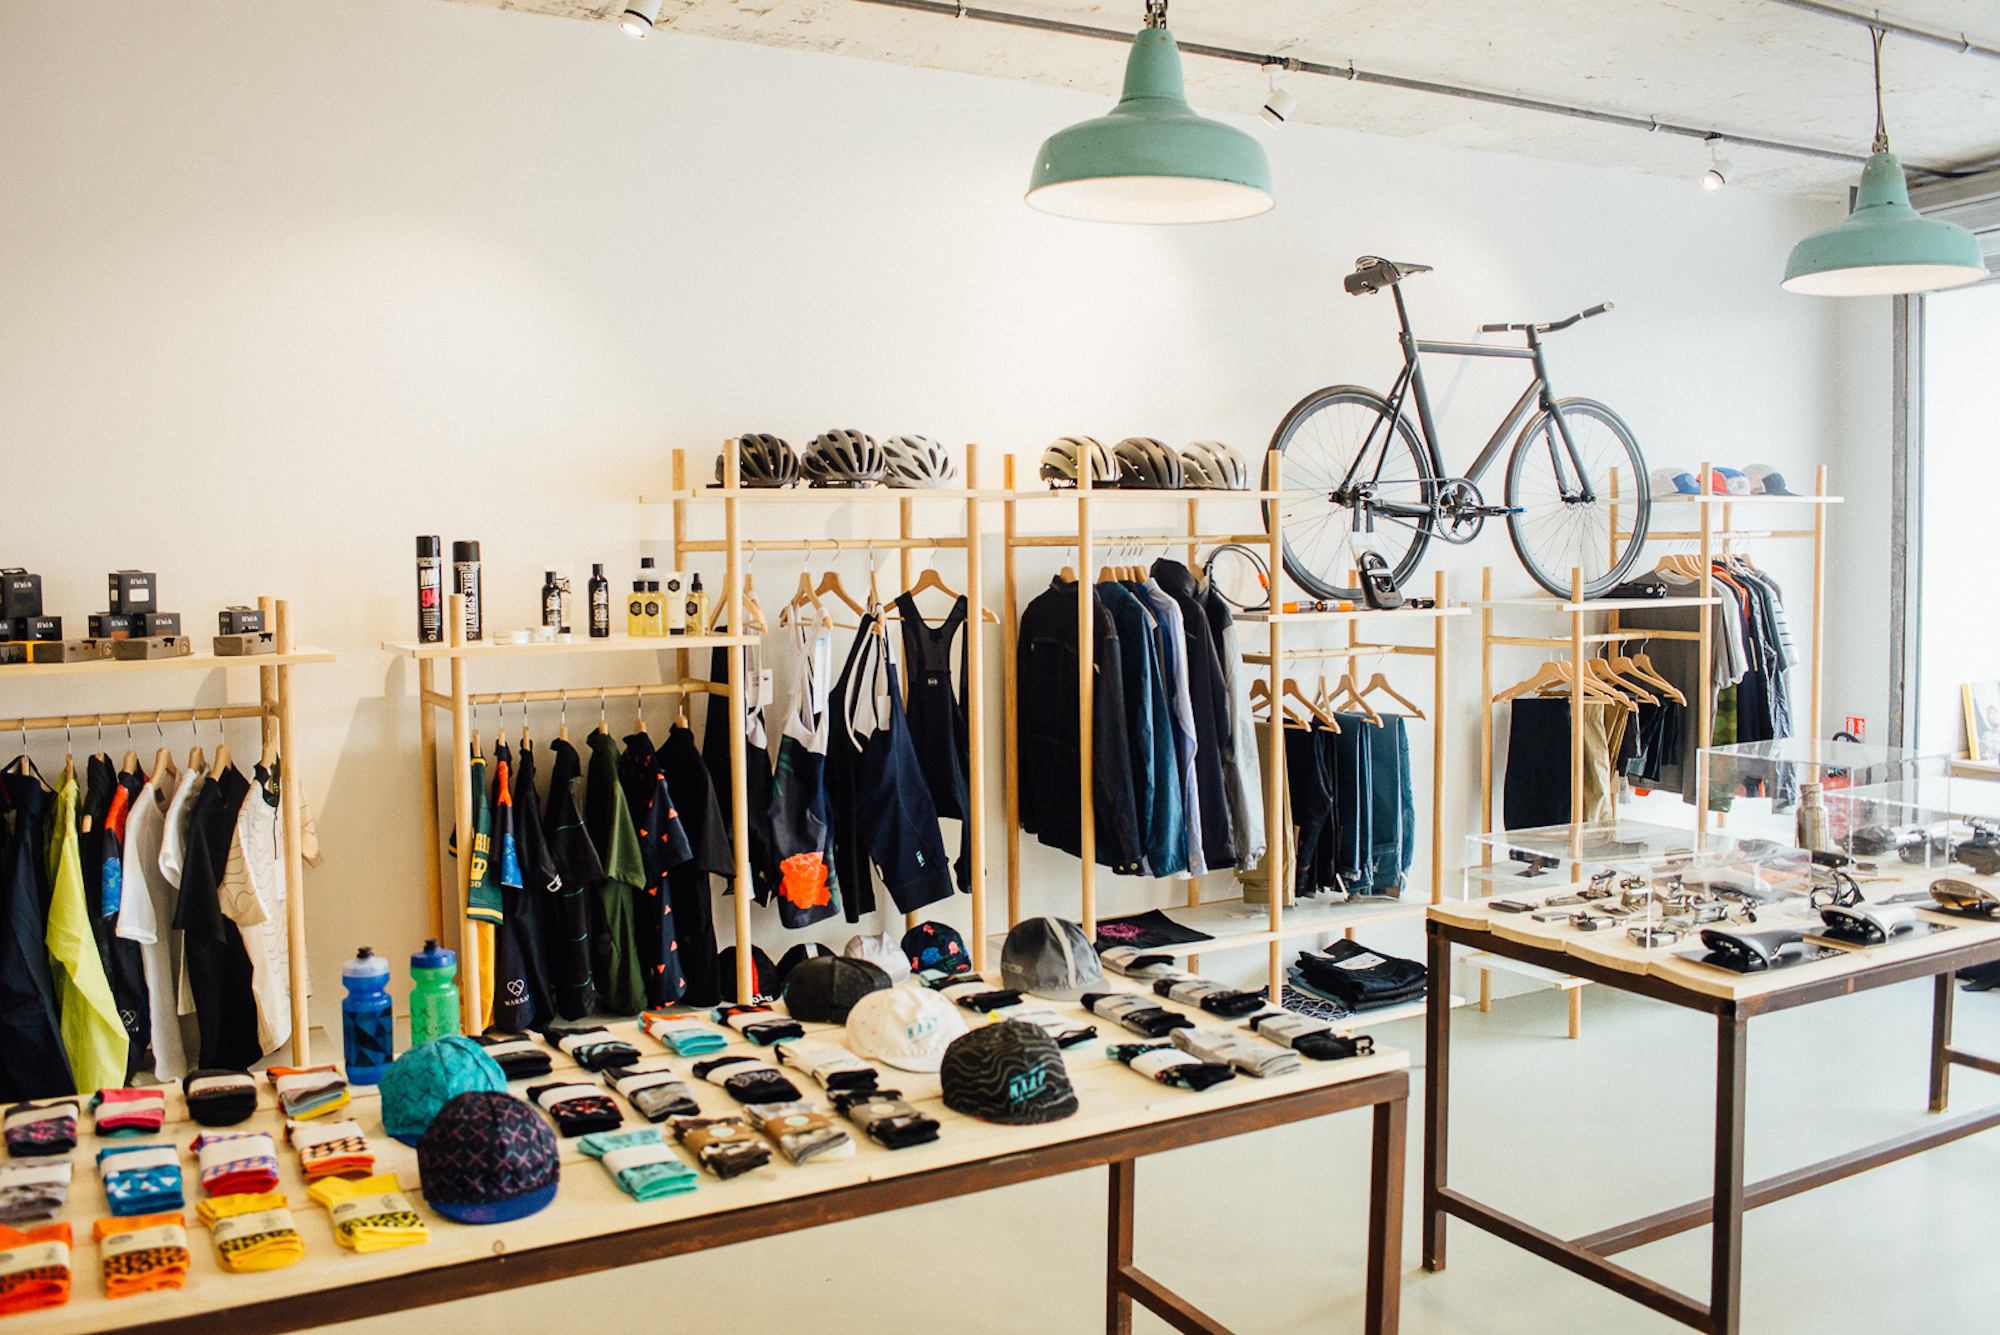 Inside one of Paris' best concept stores, Steel Cyclewear sells everything from bikes to socks and also has a cafe.